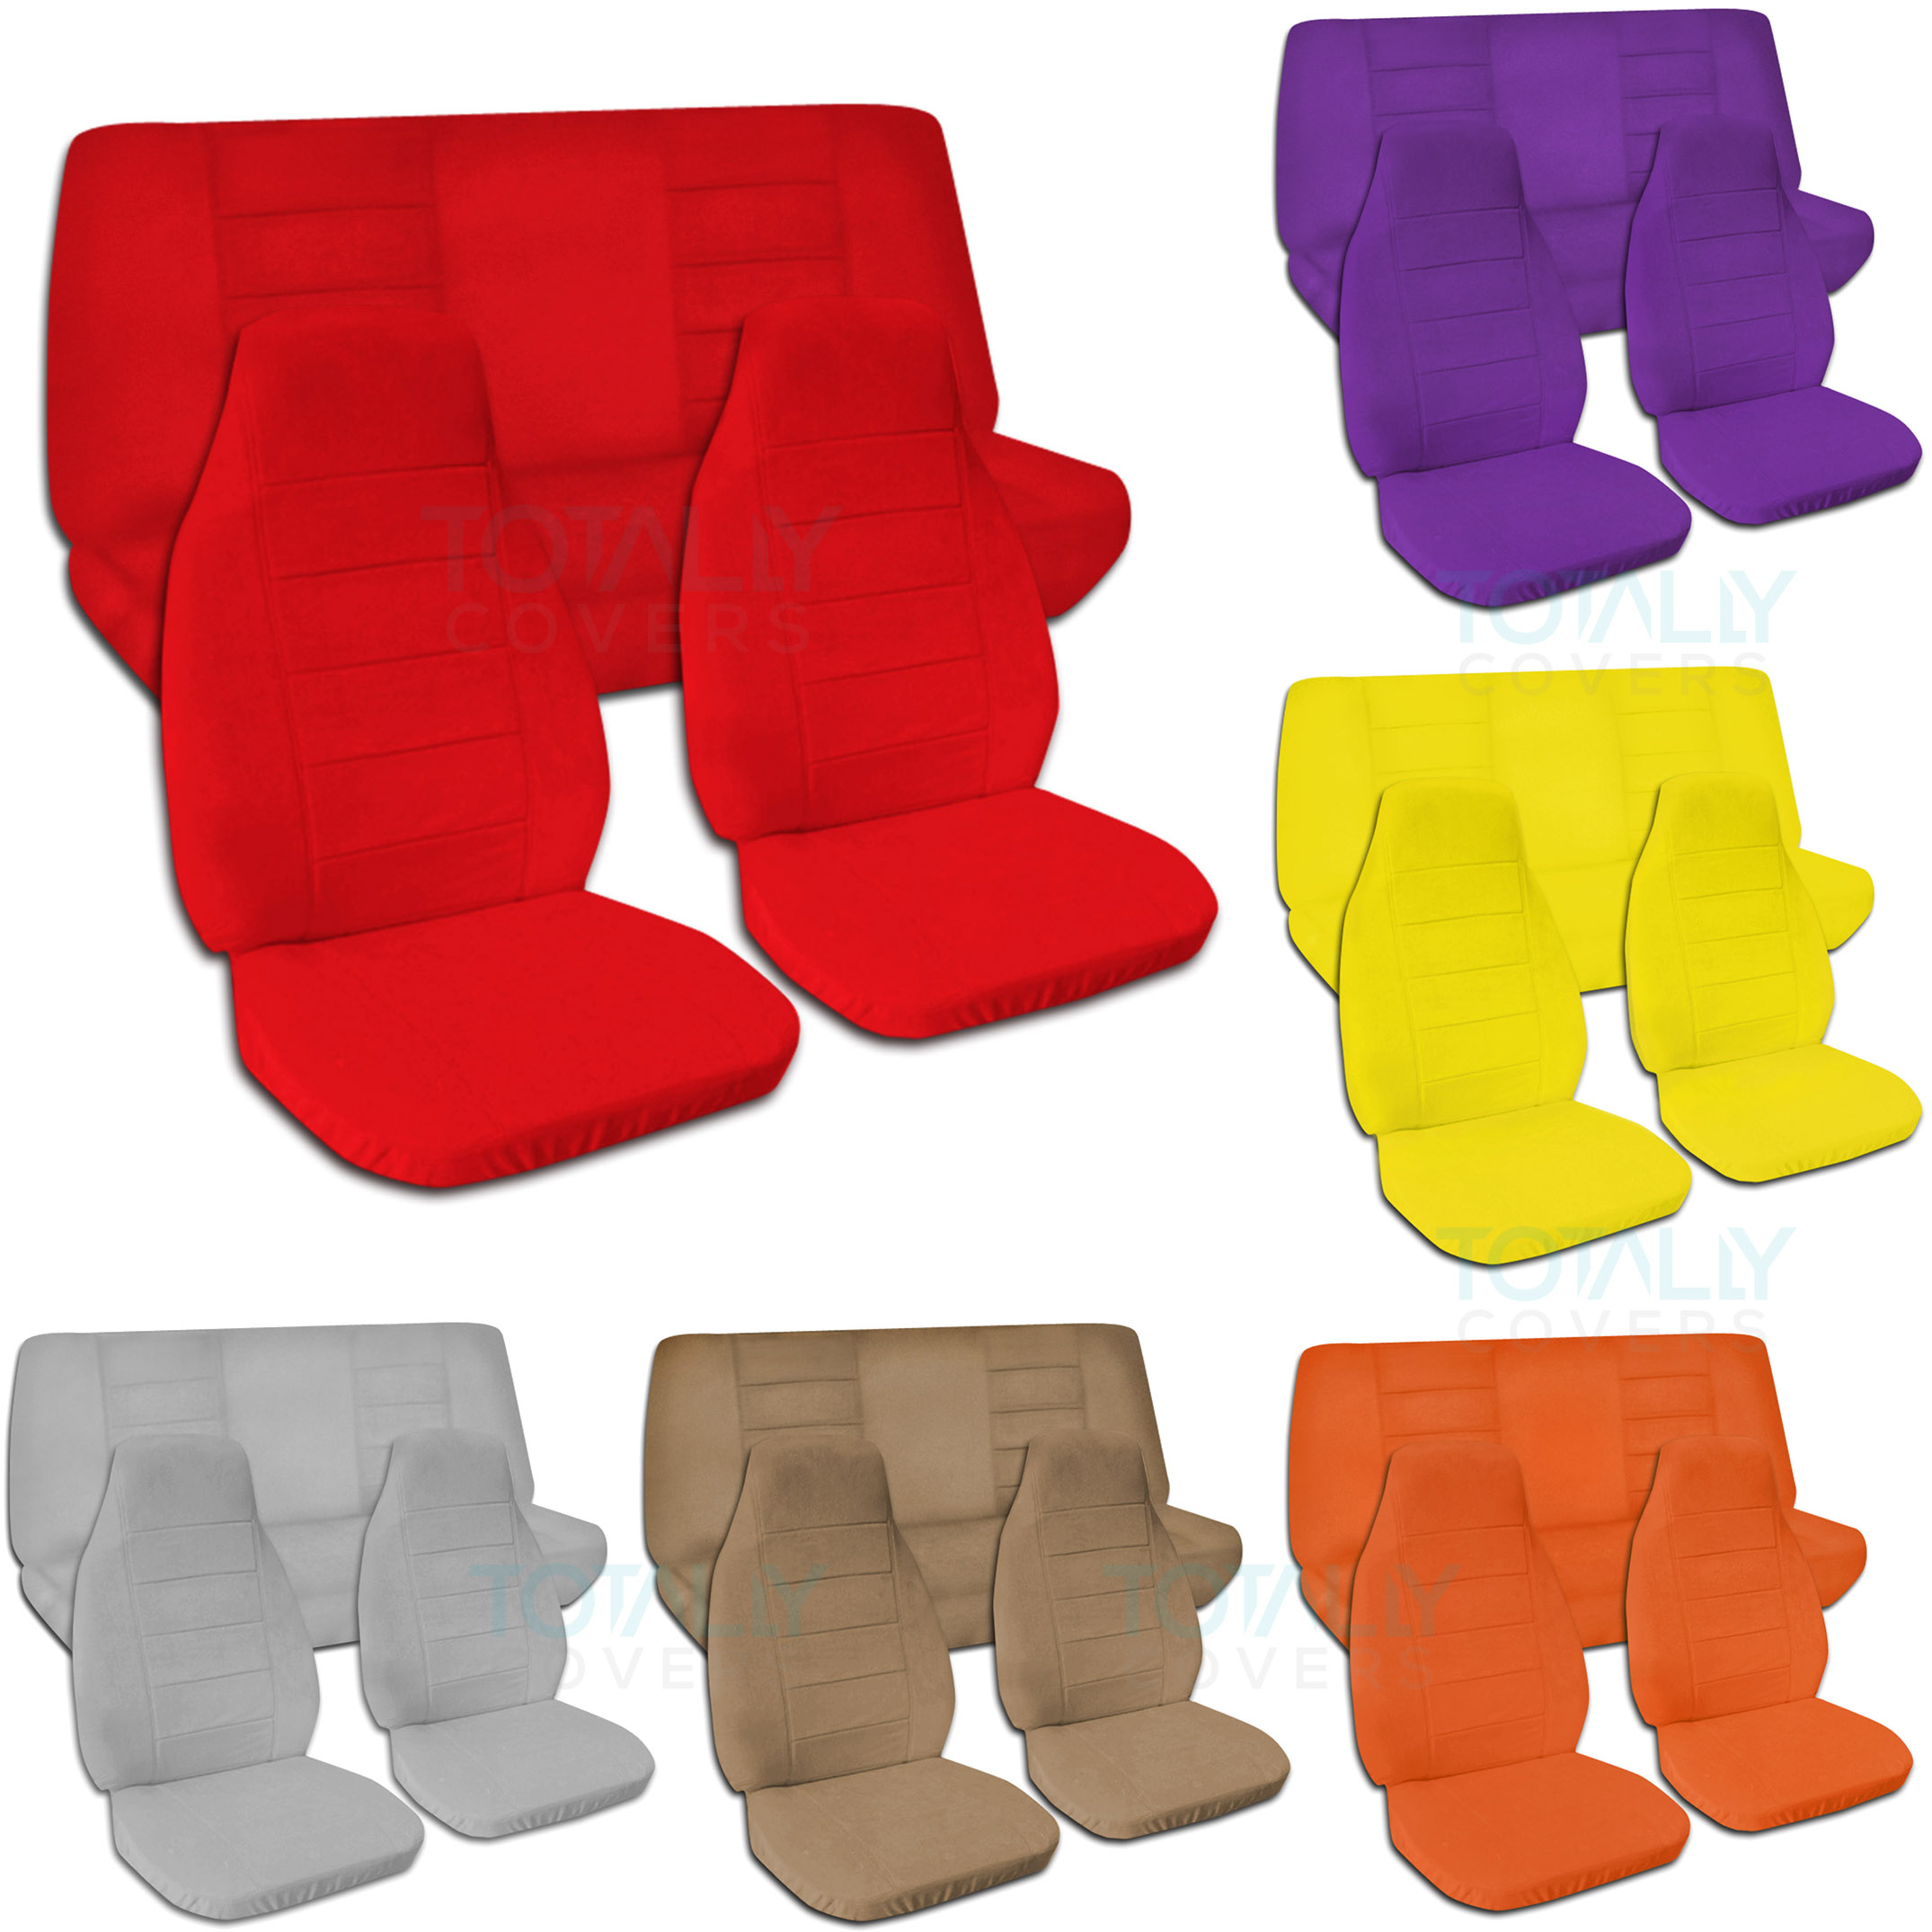 Full Set Seat Covers